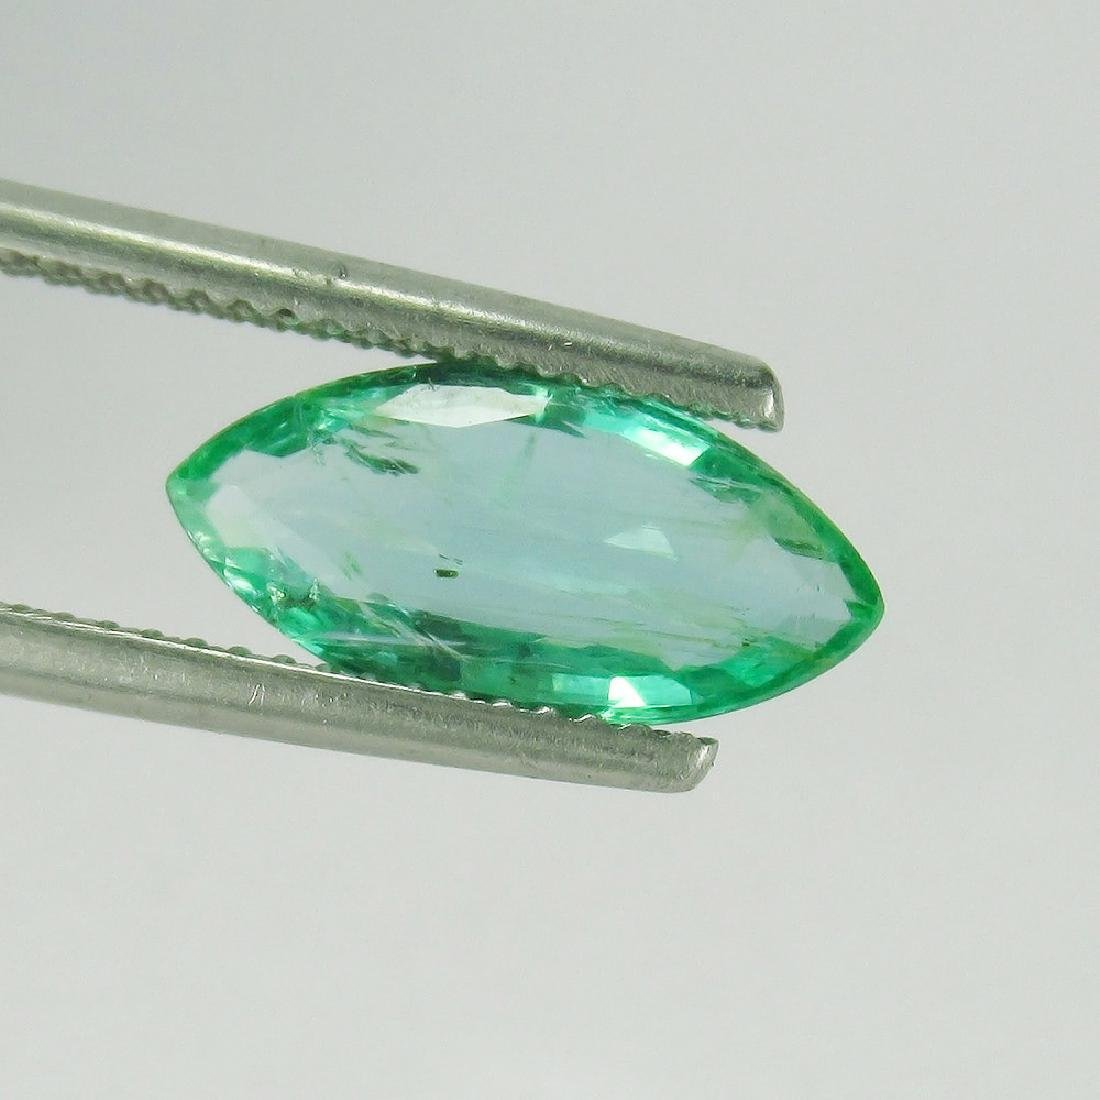 2.12 Ct Genuine Loose Exclusive Top Emerald Marquise